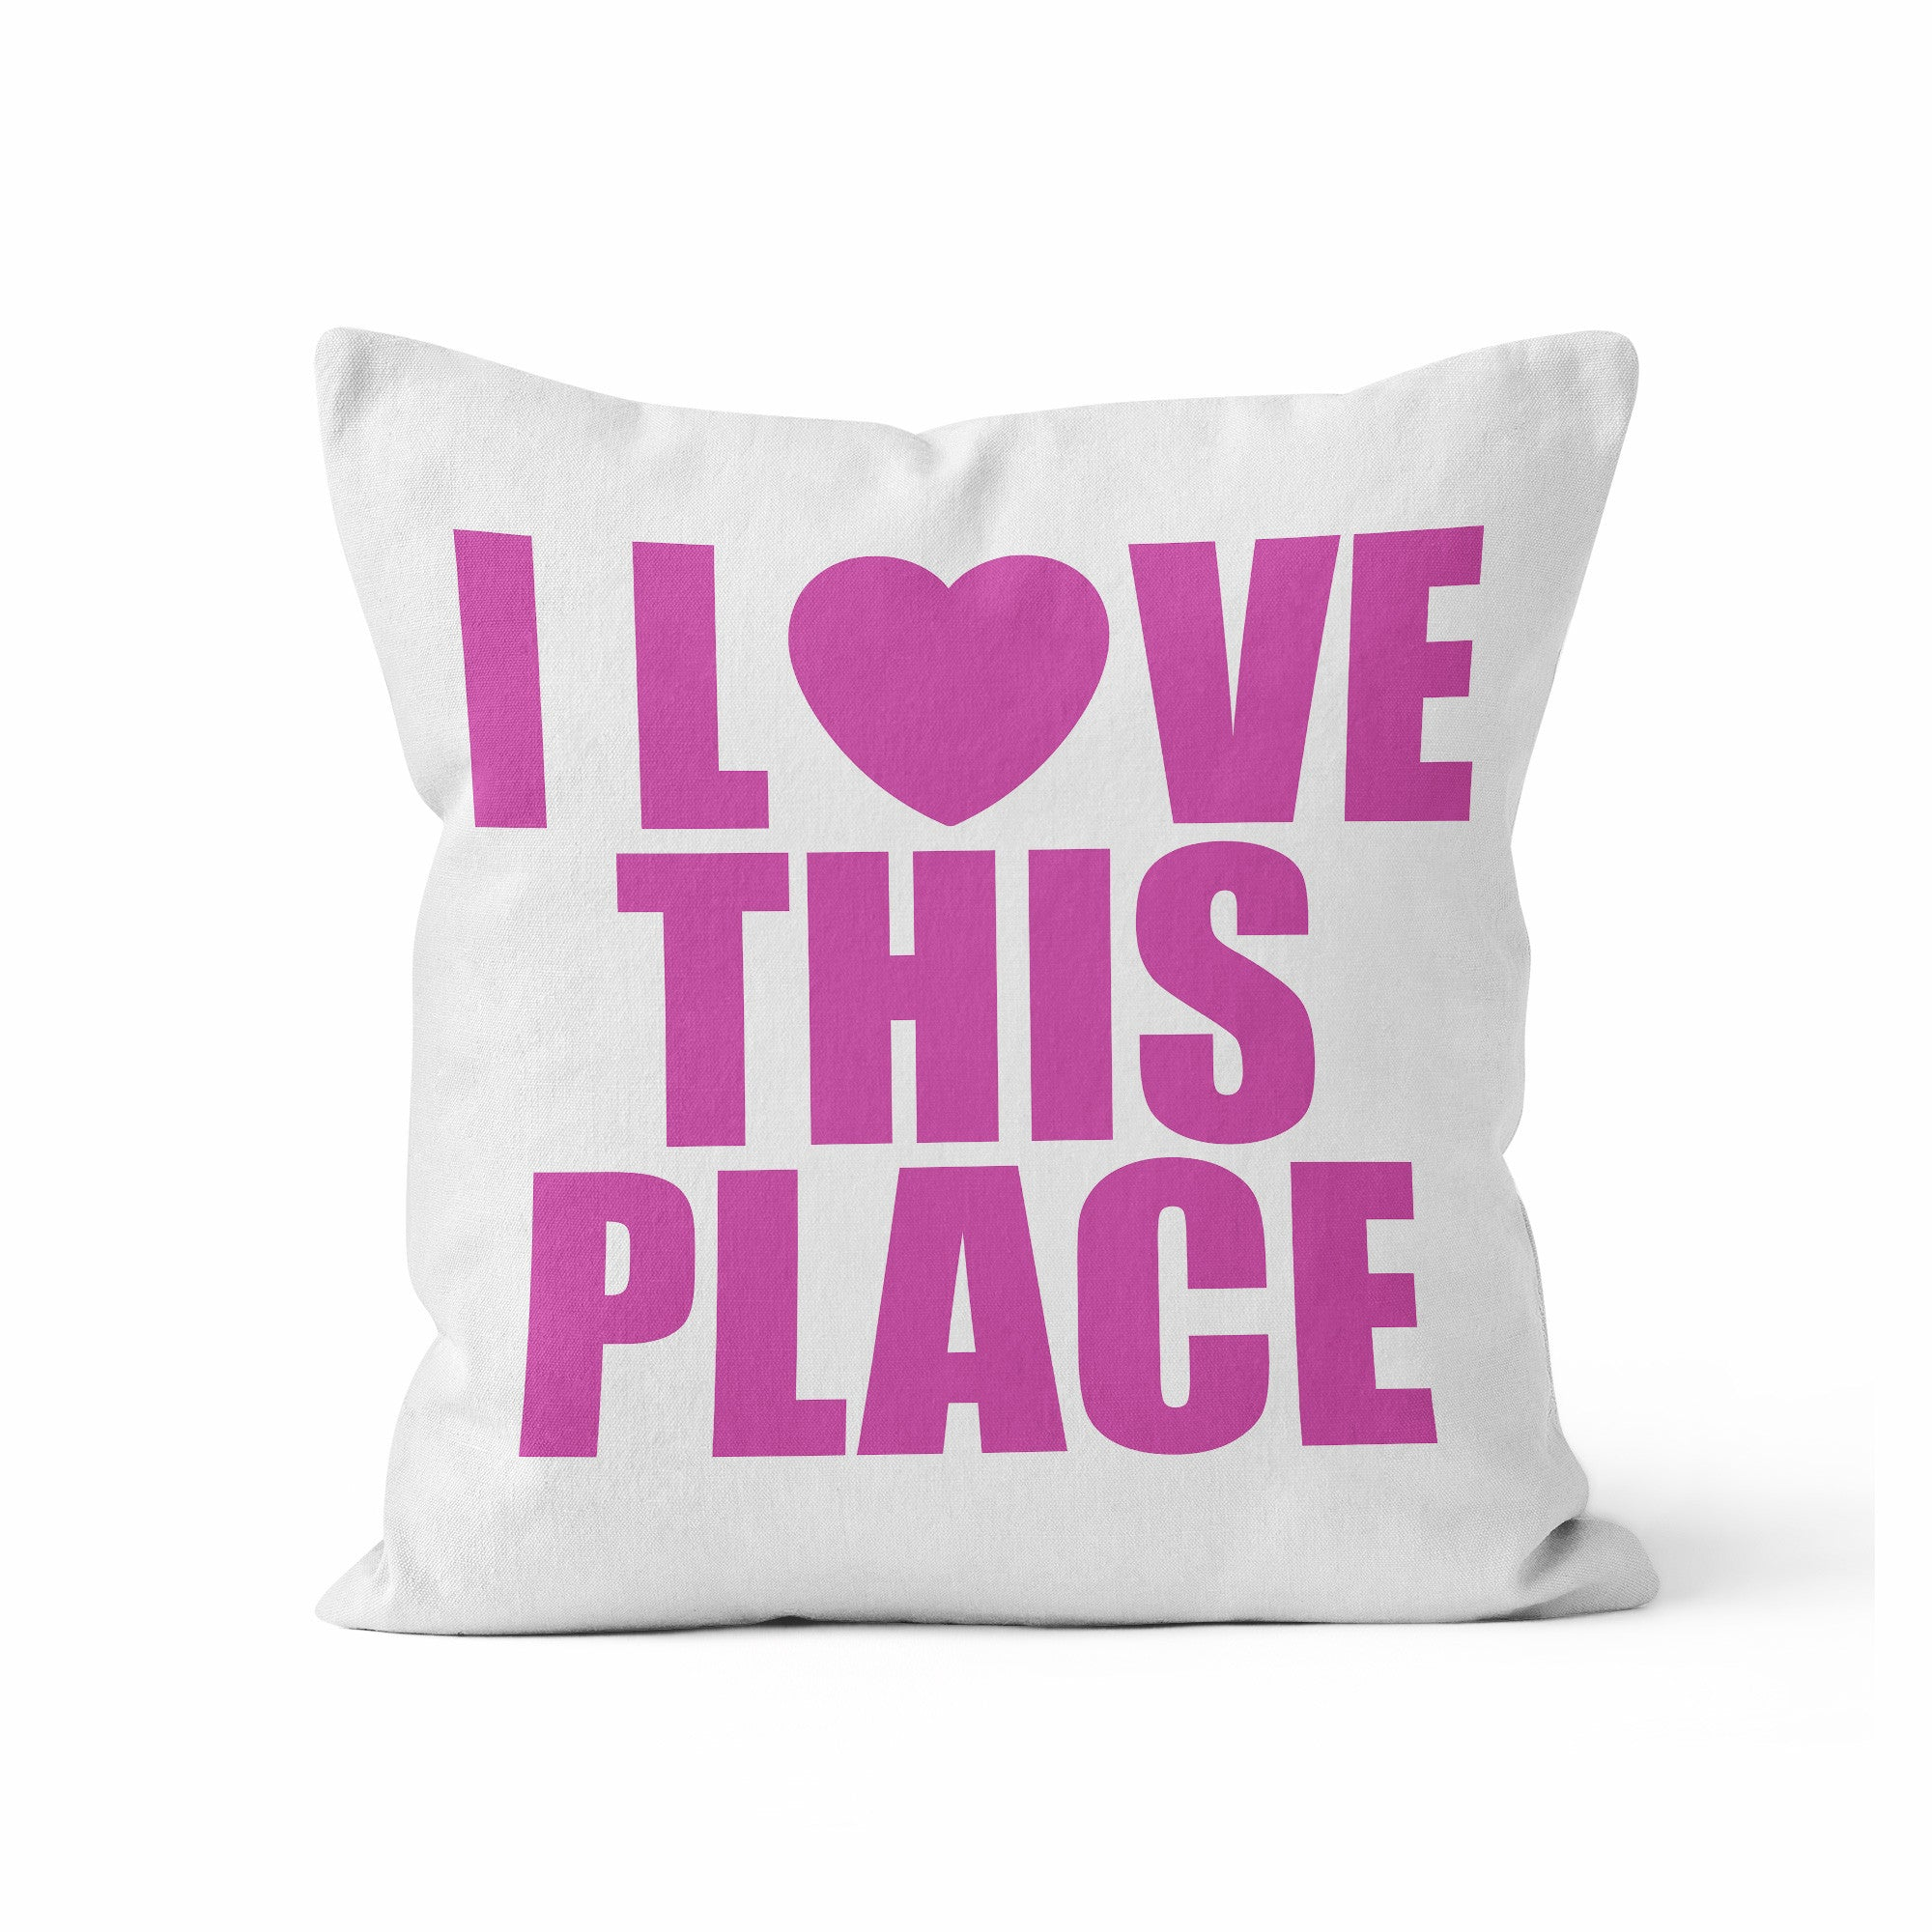 Pillow Cover, I Love This Place, CUSTOM COLOR by Kalilaine - Kalilaine Creations